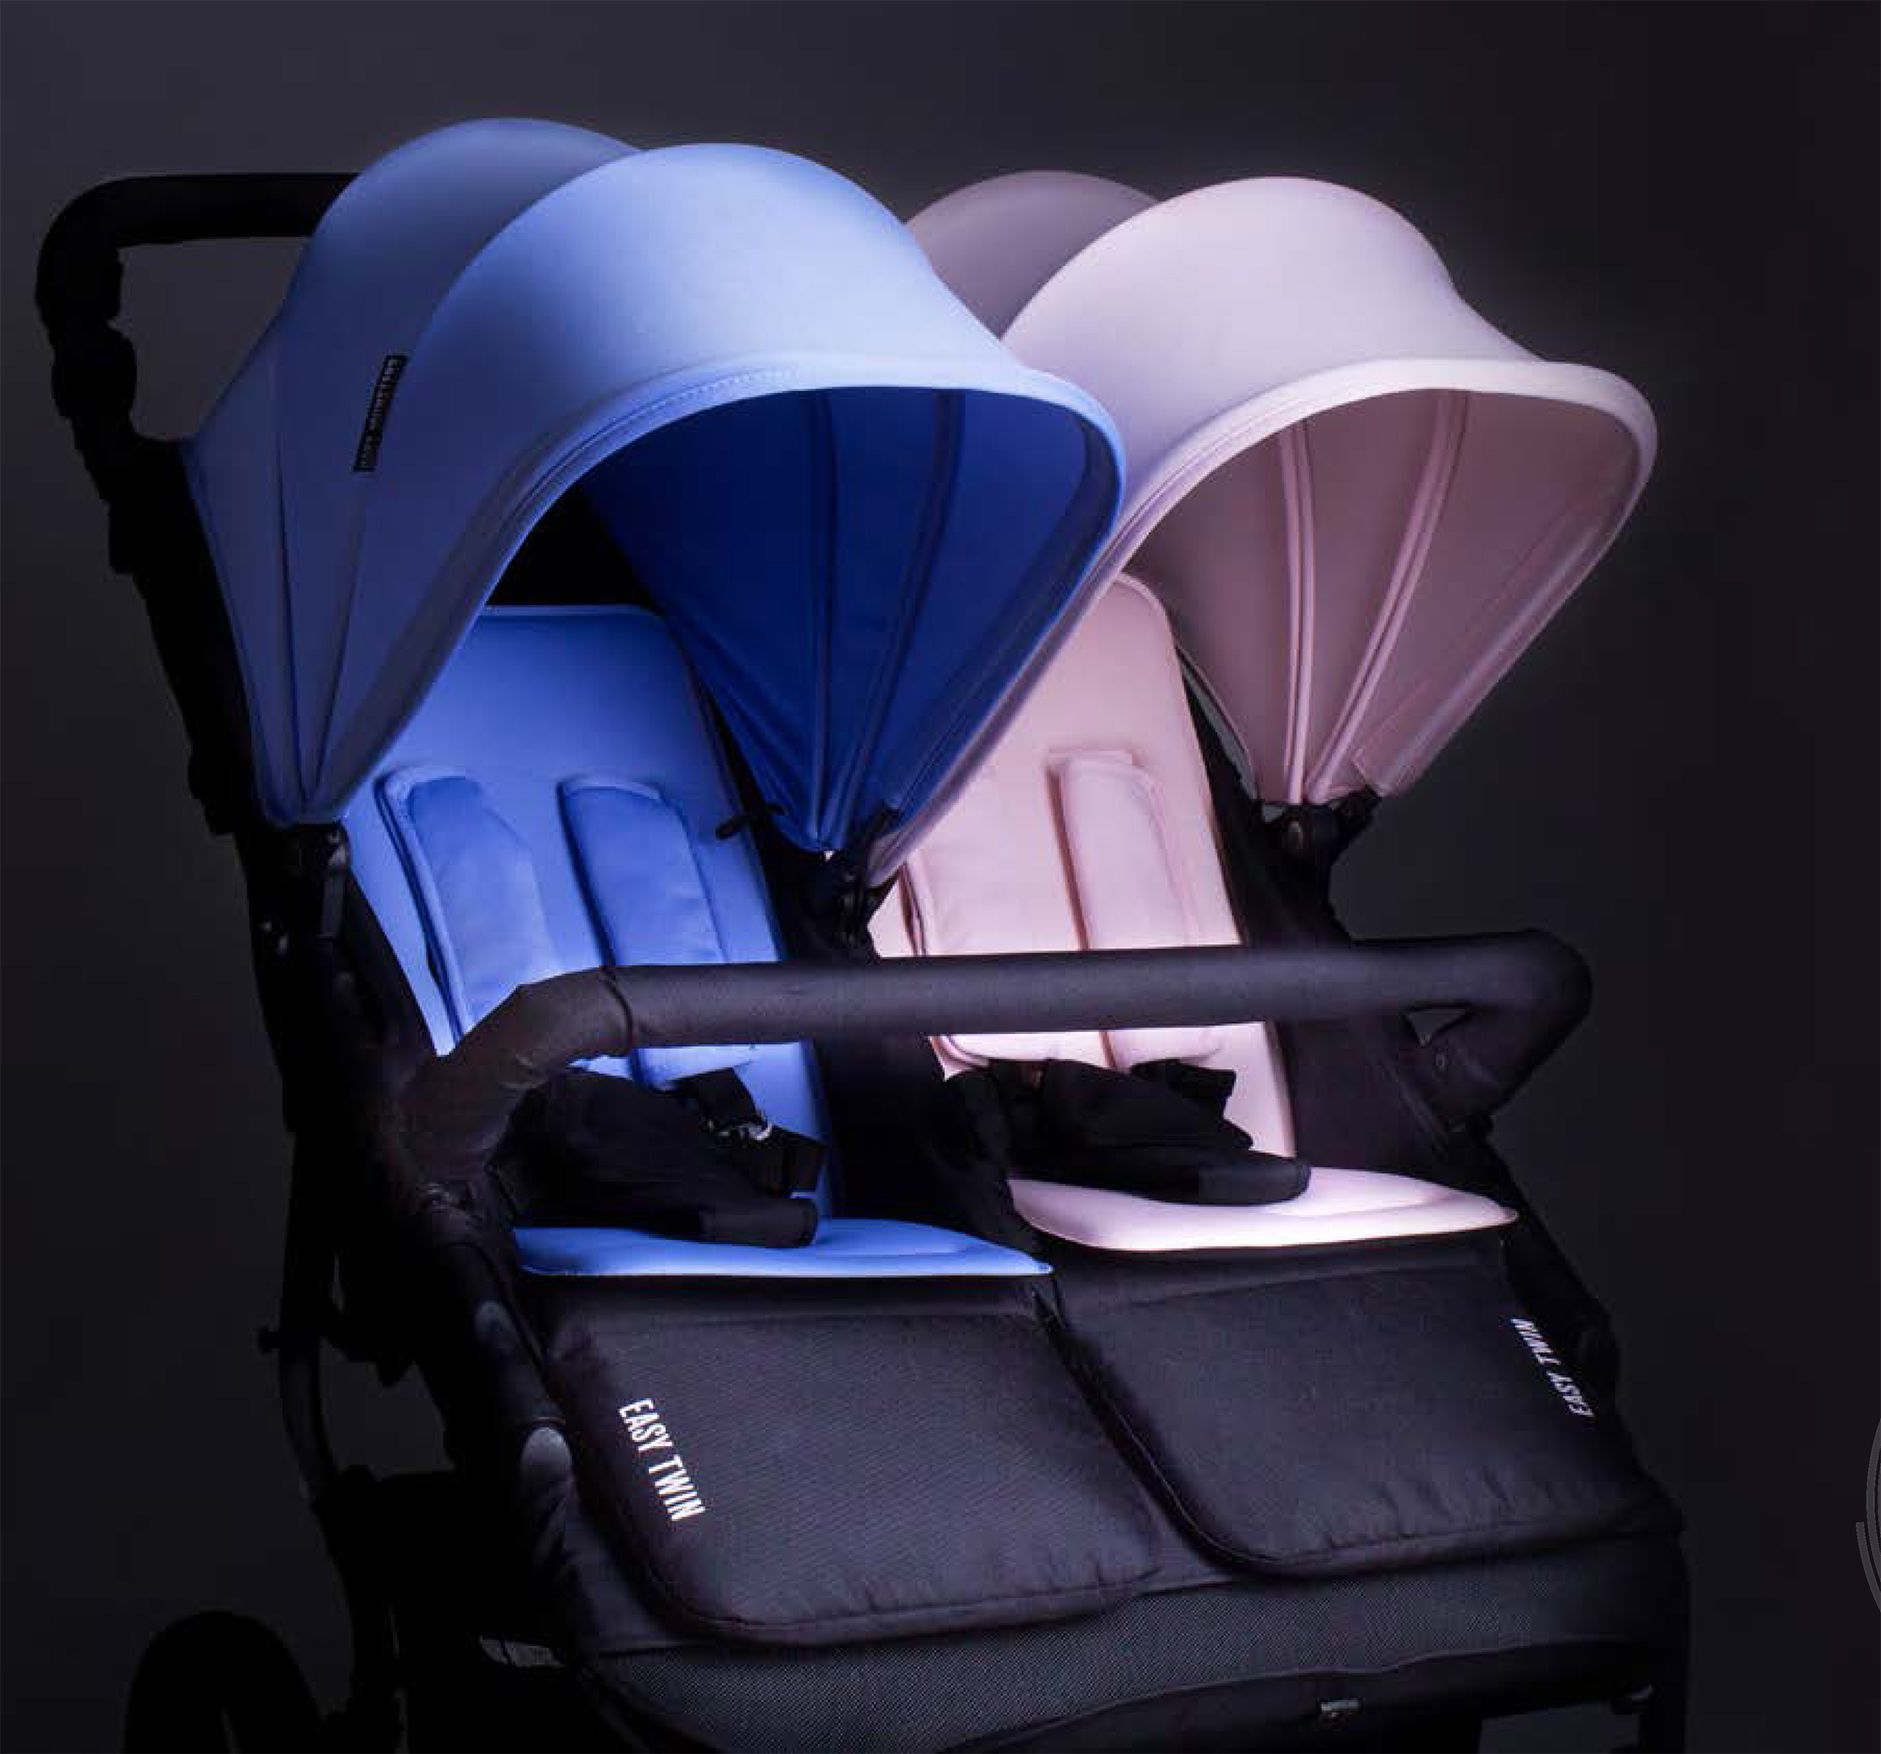 Easy twin 3.0 silla gemelar SIN PACK COLOR